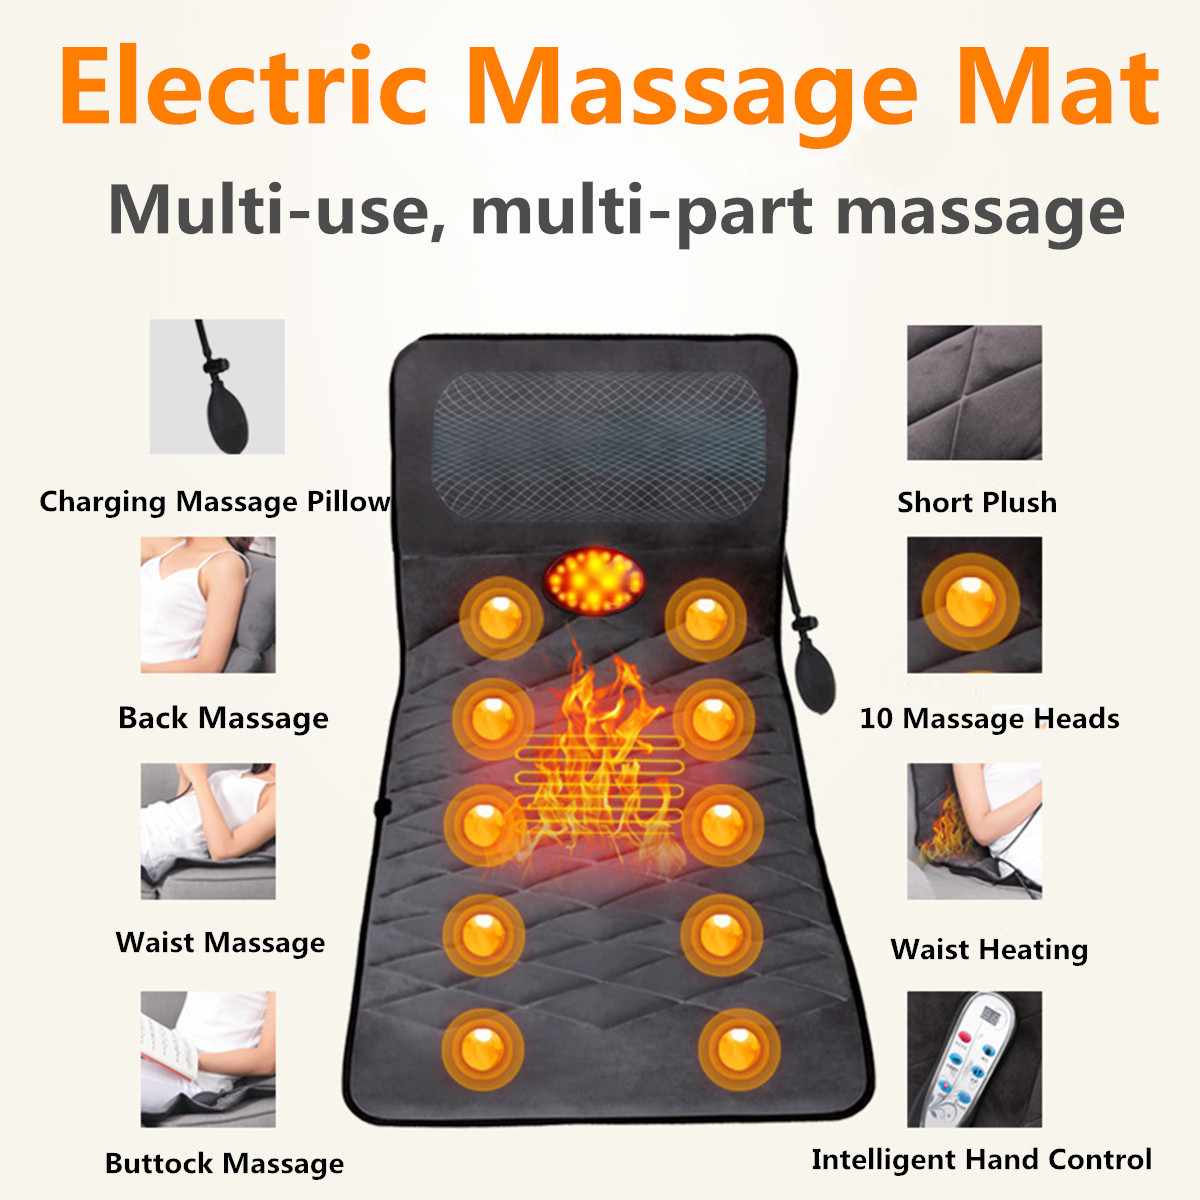 Full Body Massage Mat Electric Vibrator Massager Mattress Far-Infrared Heating Therapy Neck Back Massage Relaxation Bed